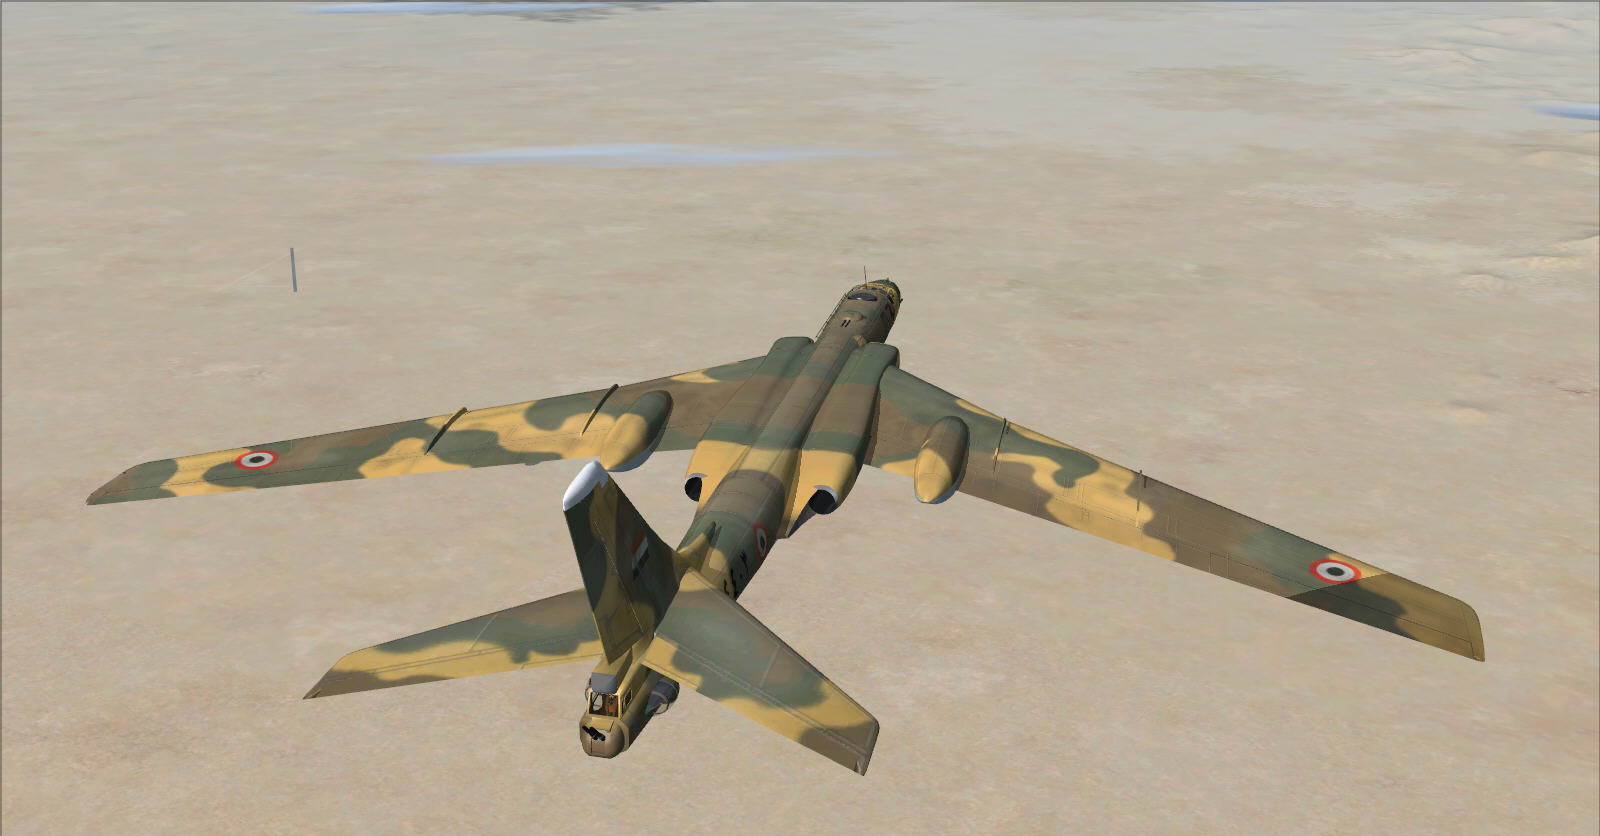 Here is a new adaptation for FSX of the add-on of the Russian Bombardier Tu-16 Badger